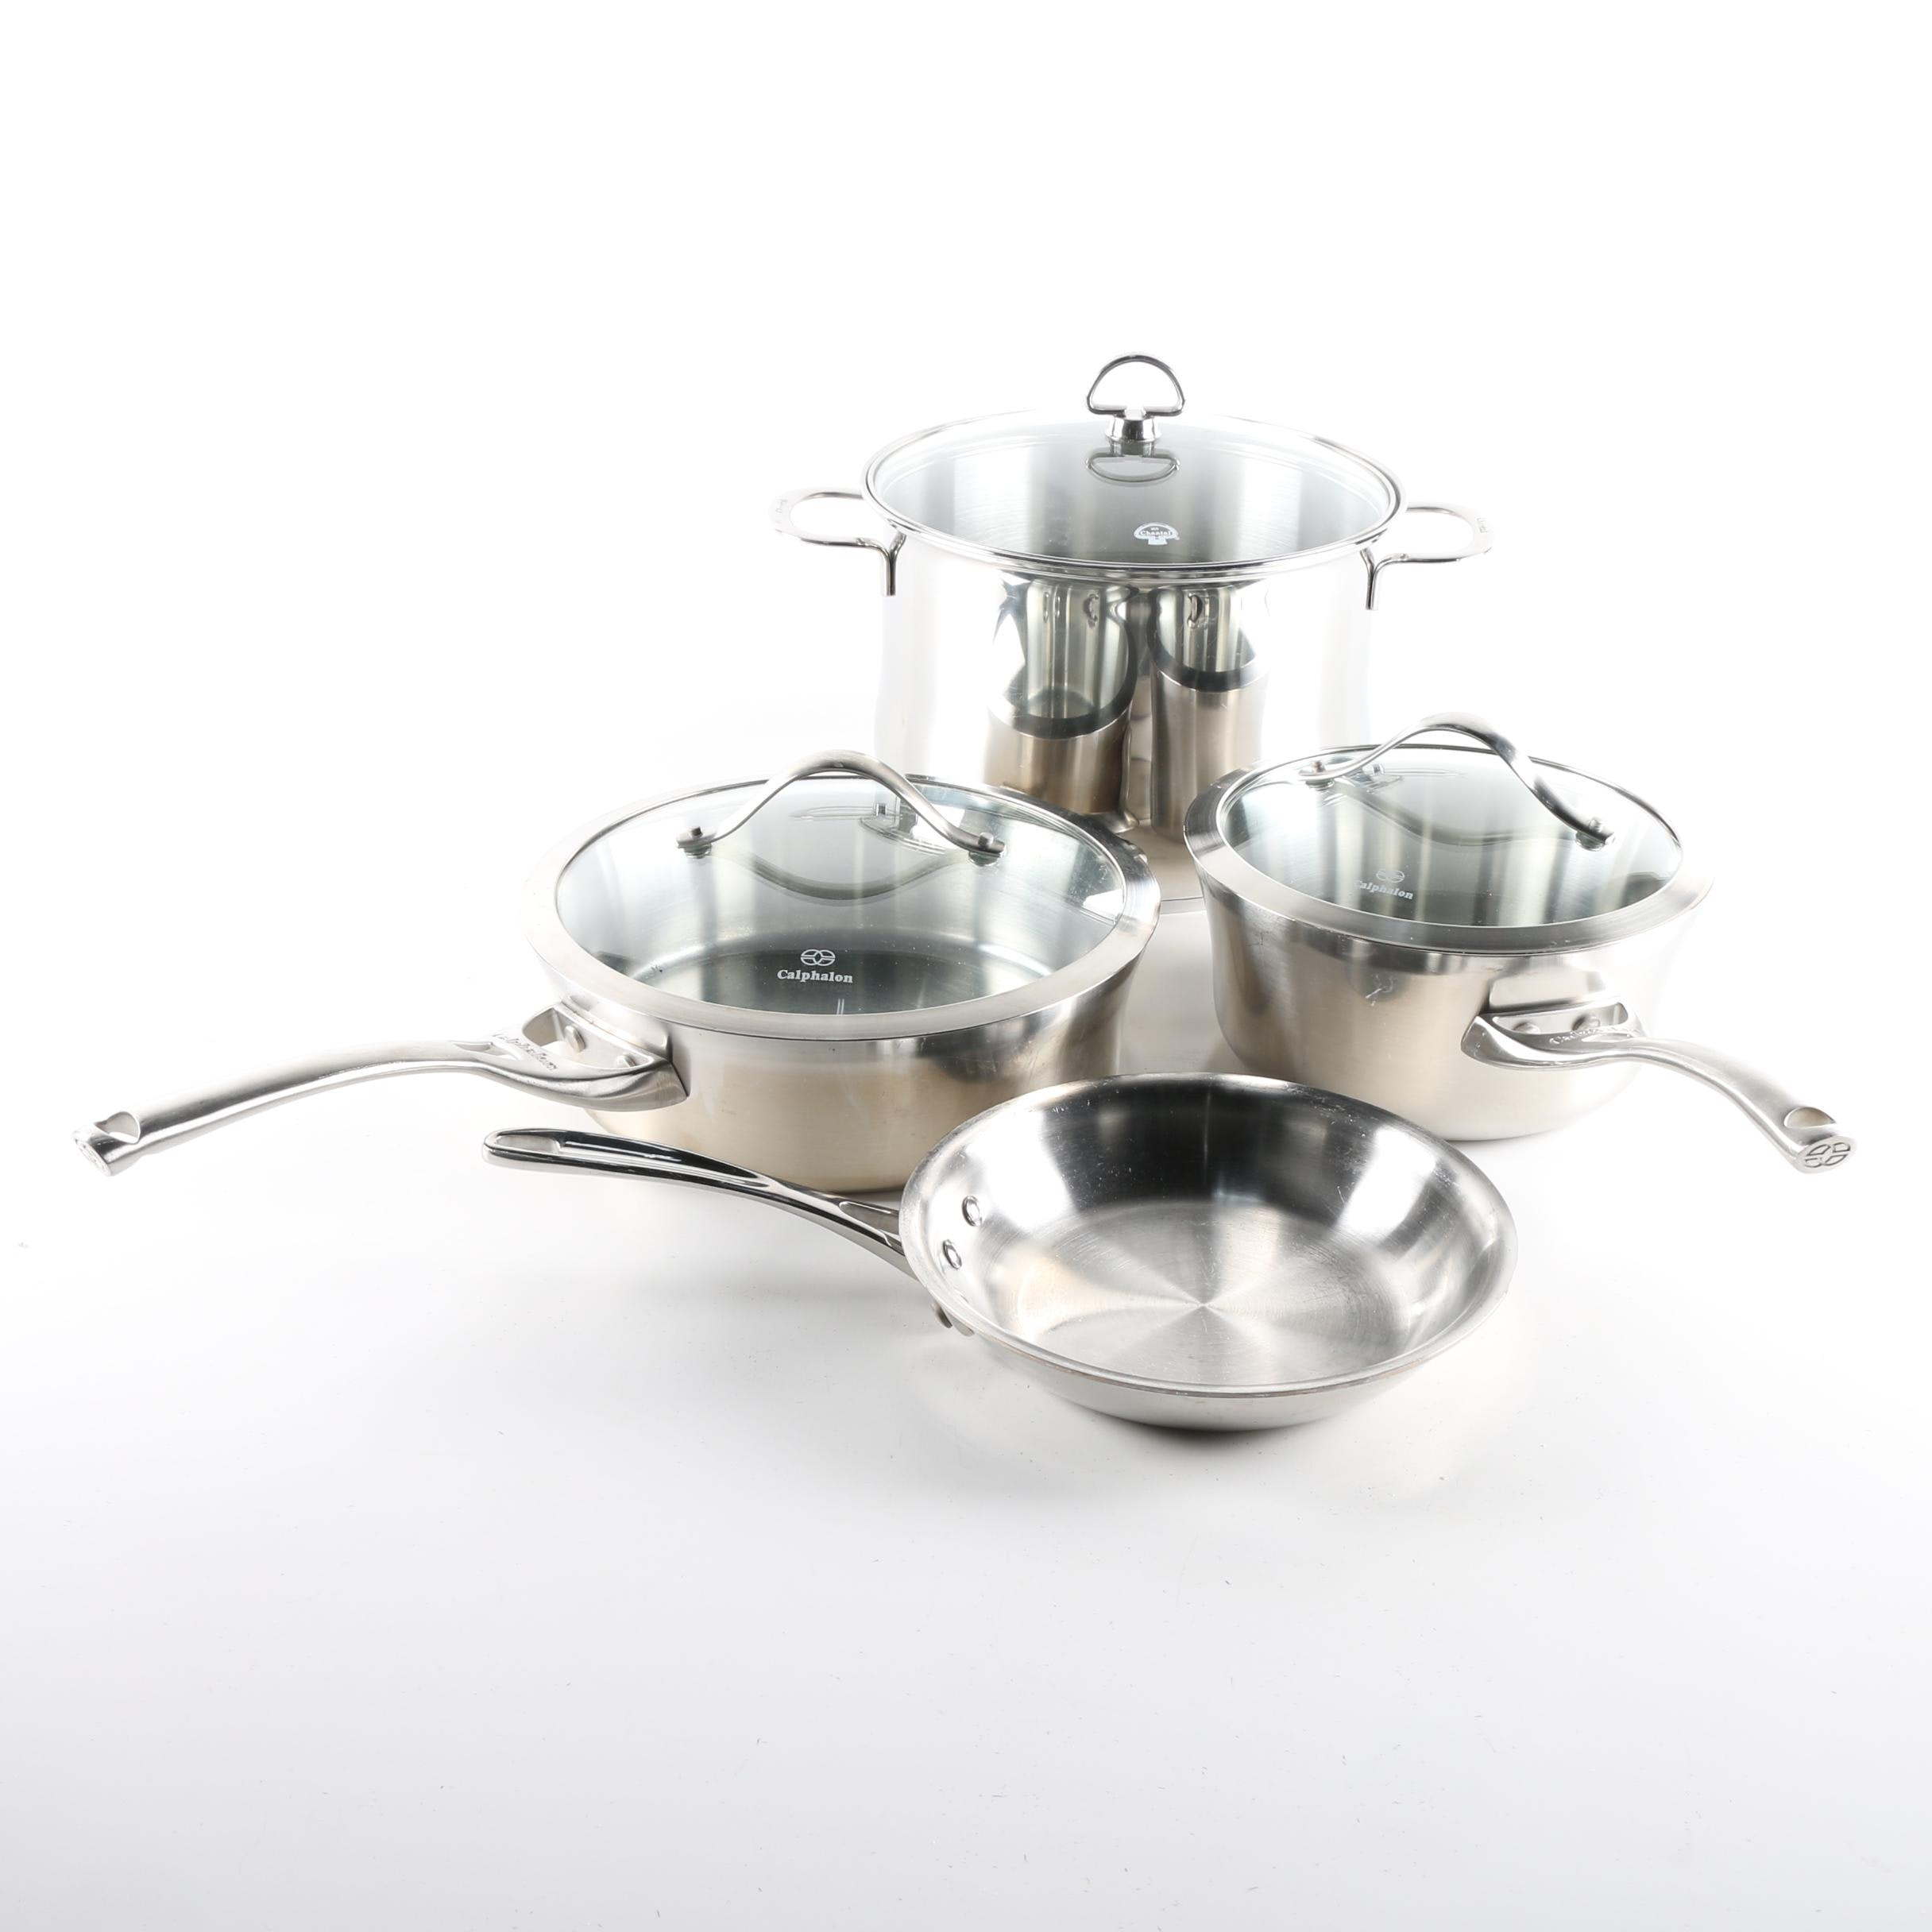 Calphalon and Chantal Stainless Steel Cookware